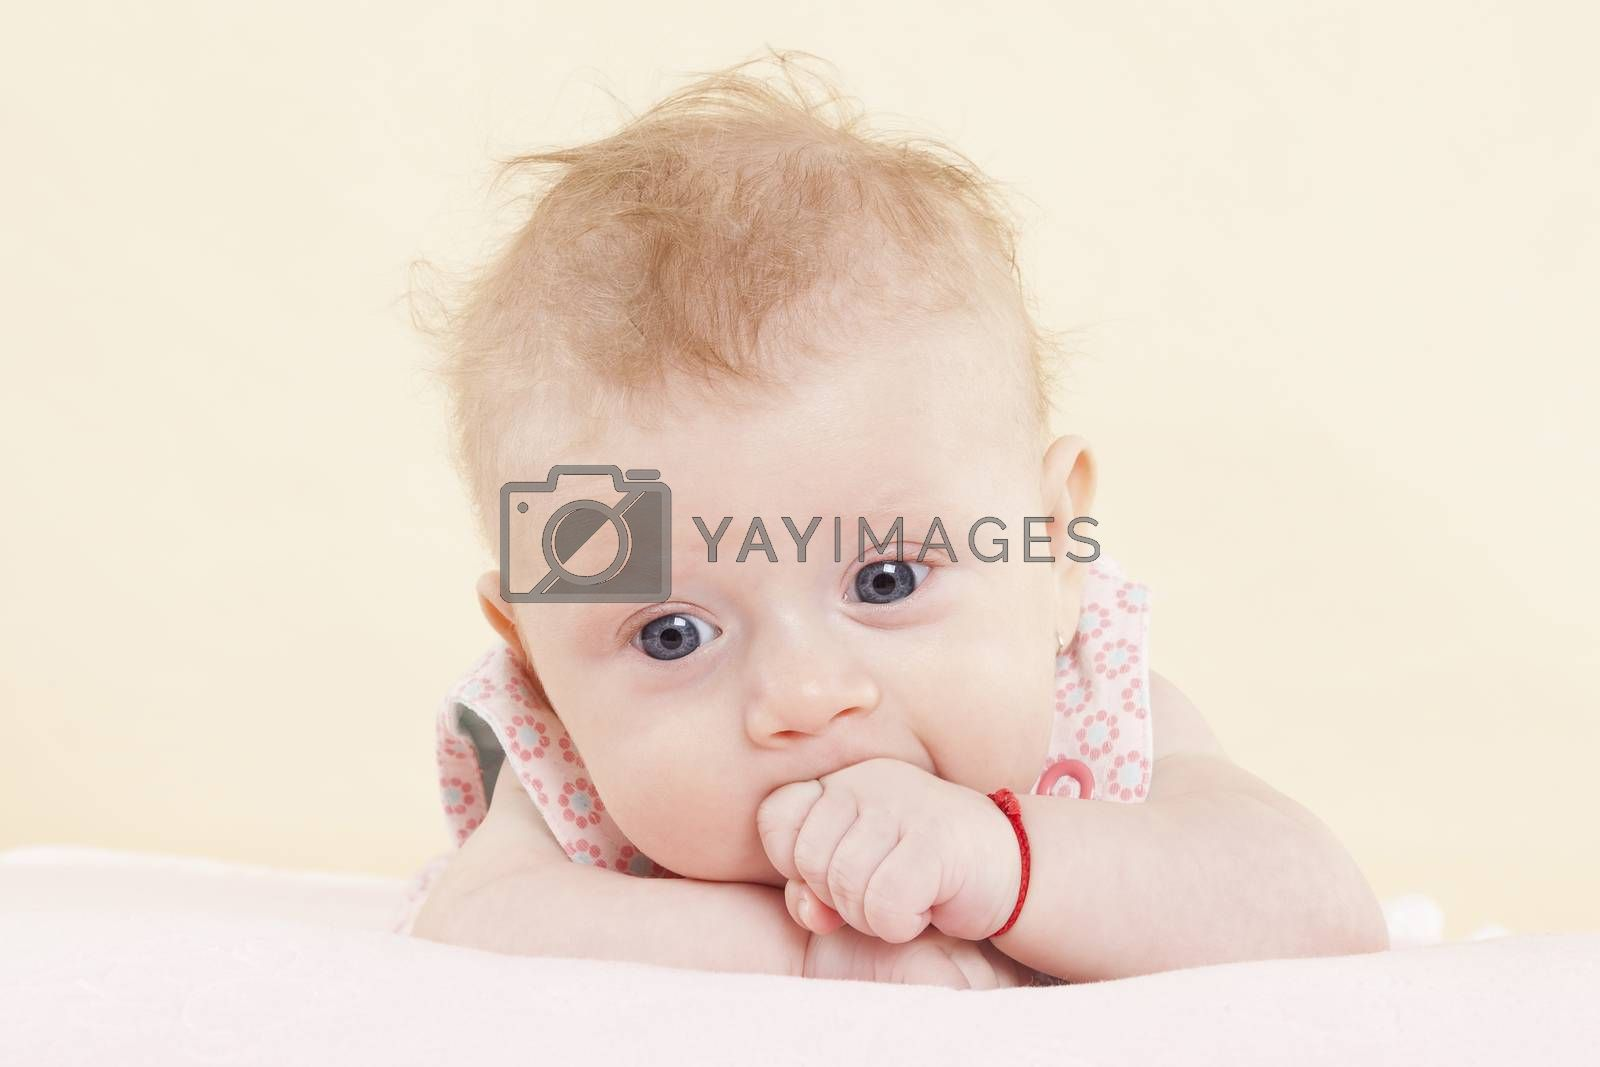 Baby girl with big blue eyes and fist in mouth portrait. Cute newborn concept.